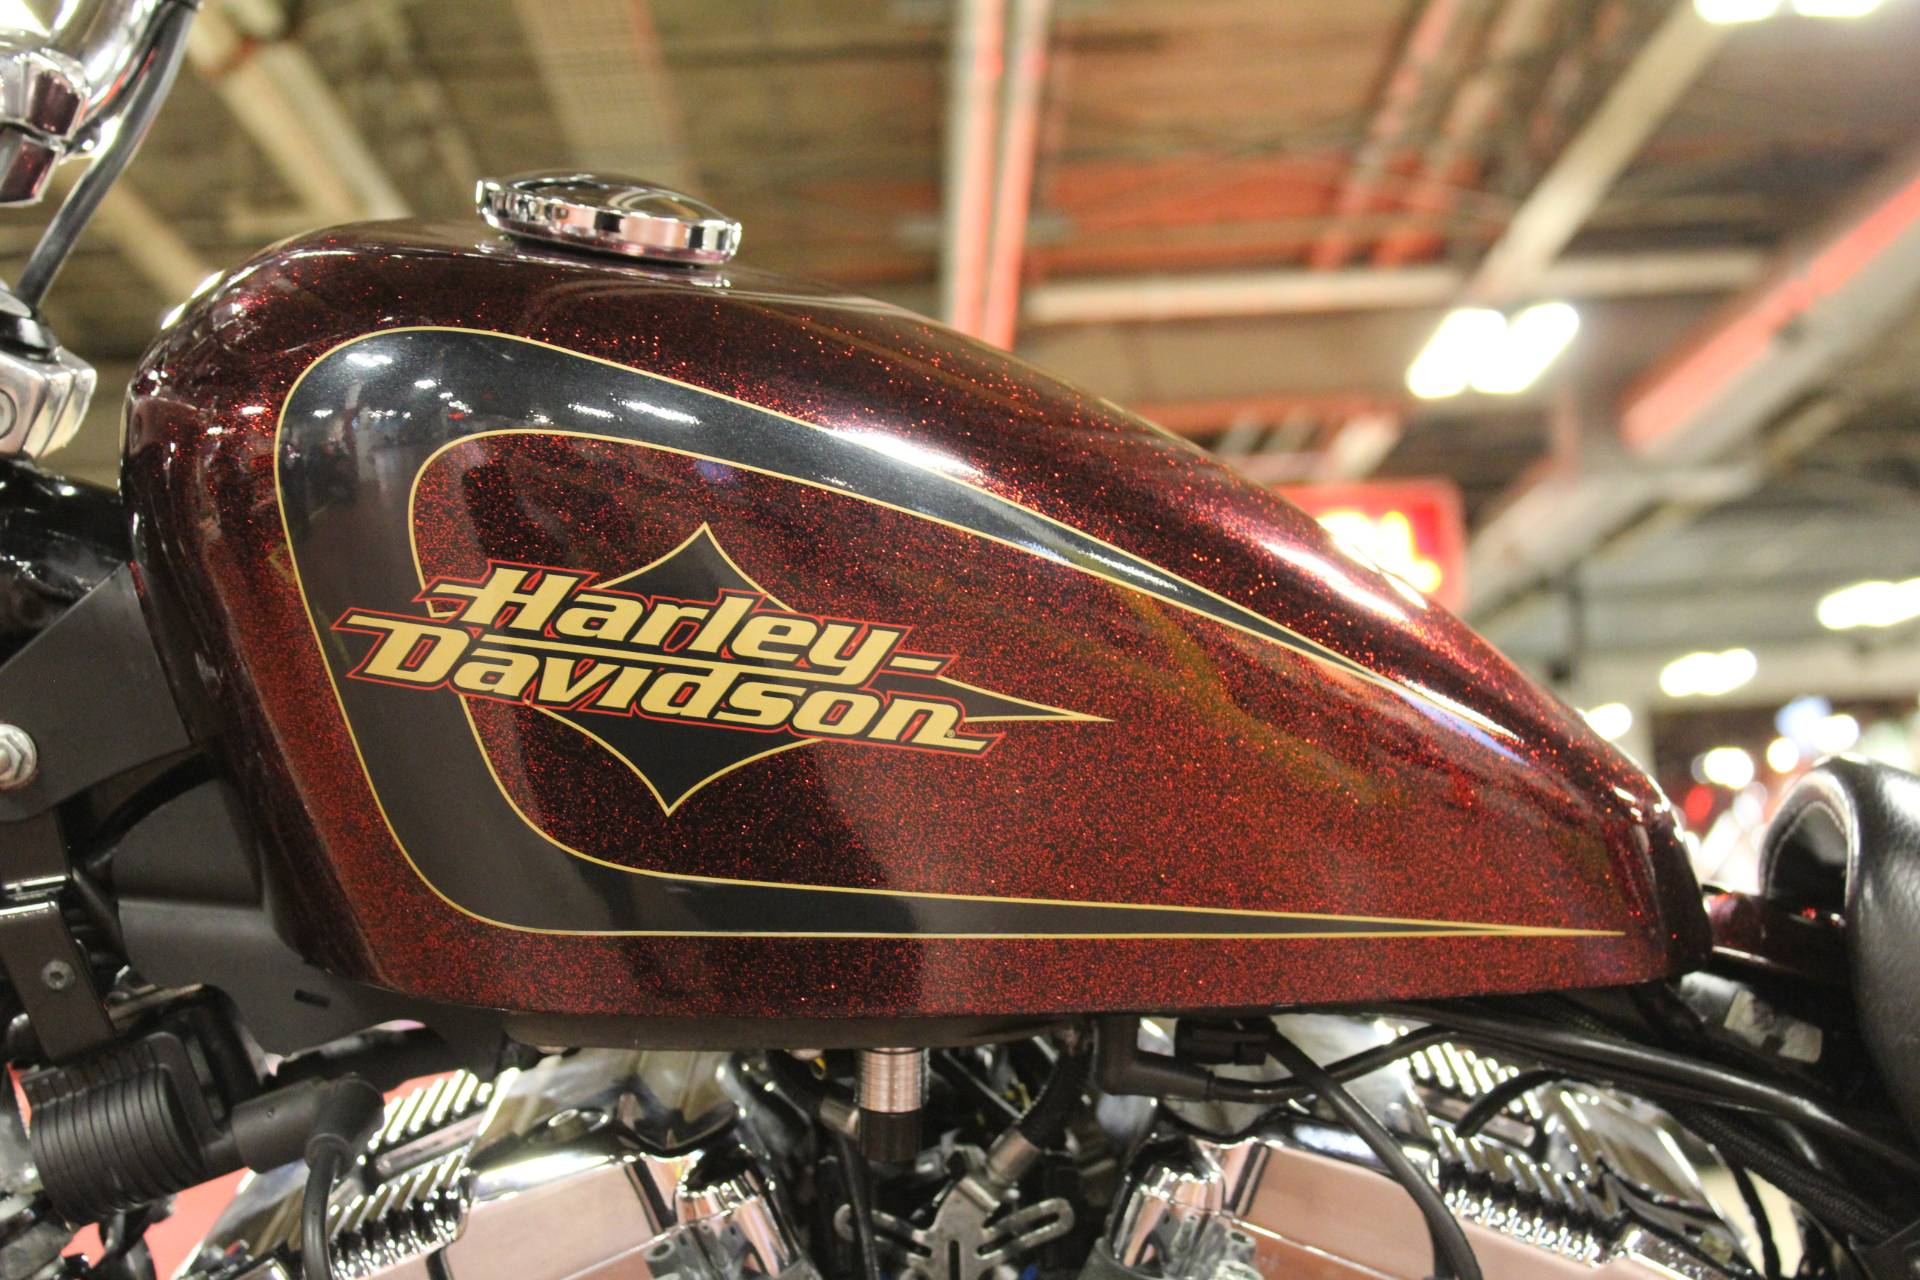 Used 2013 Harley Davidson Sportster Seventy Two Hard Candy Big Red Flake Motorcycles In New London Ct T19181